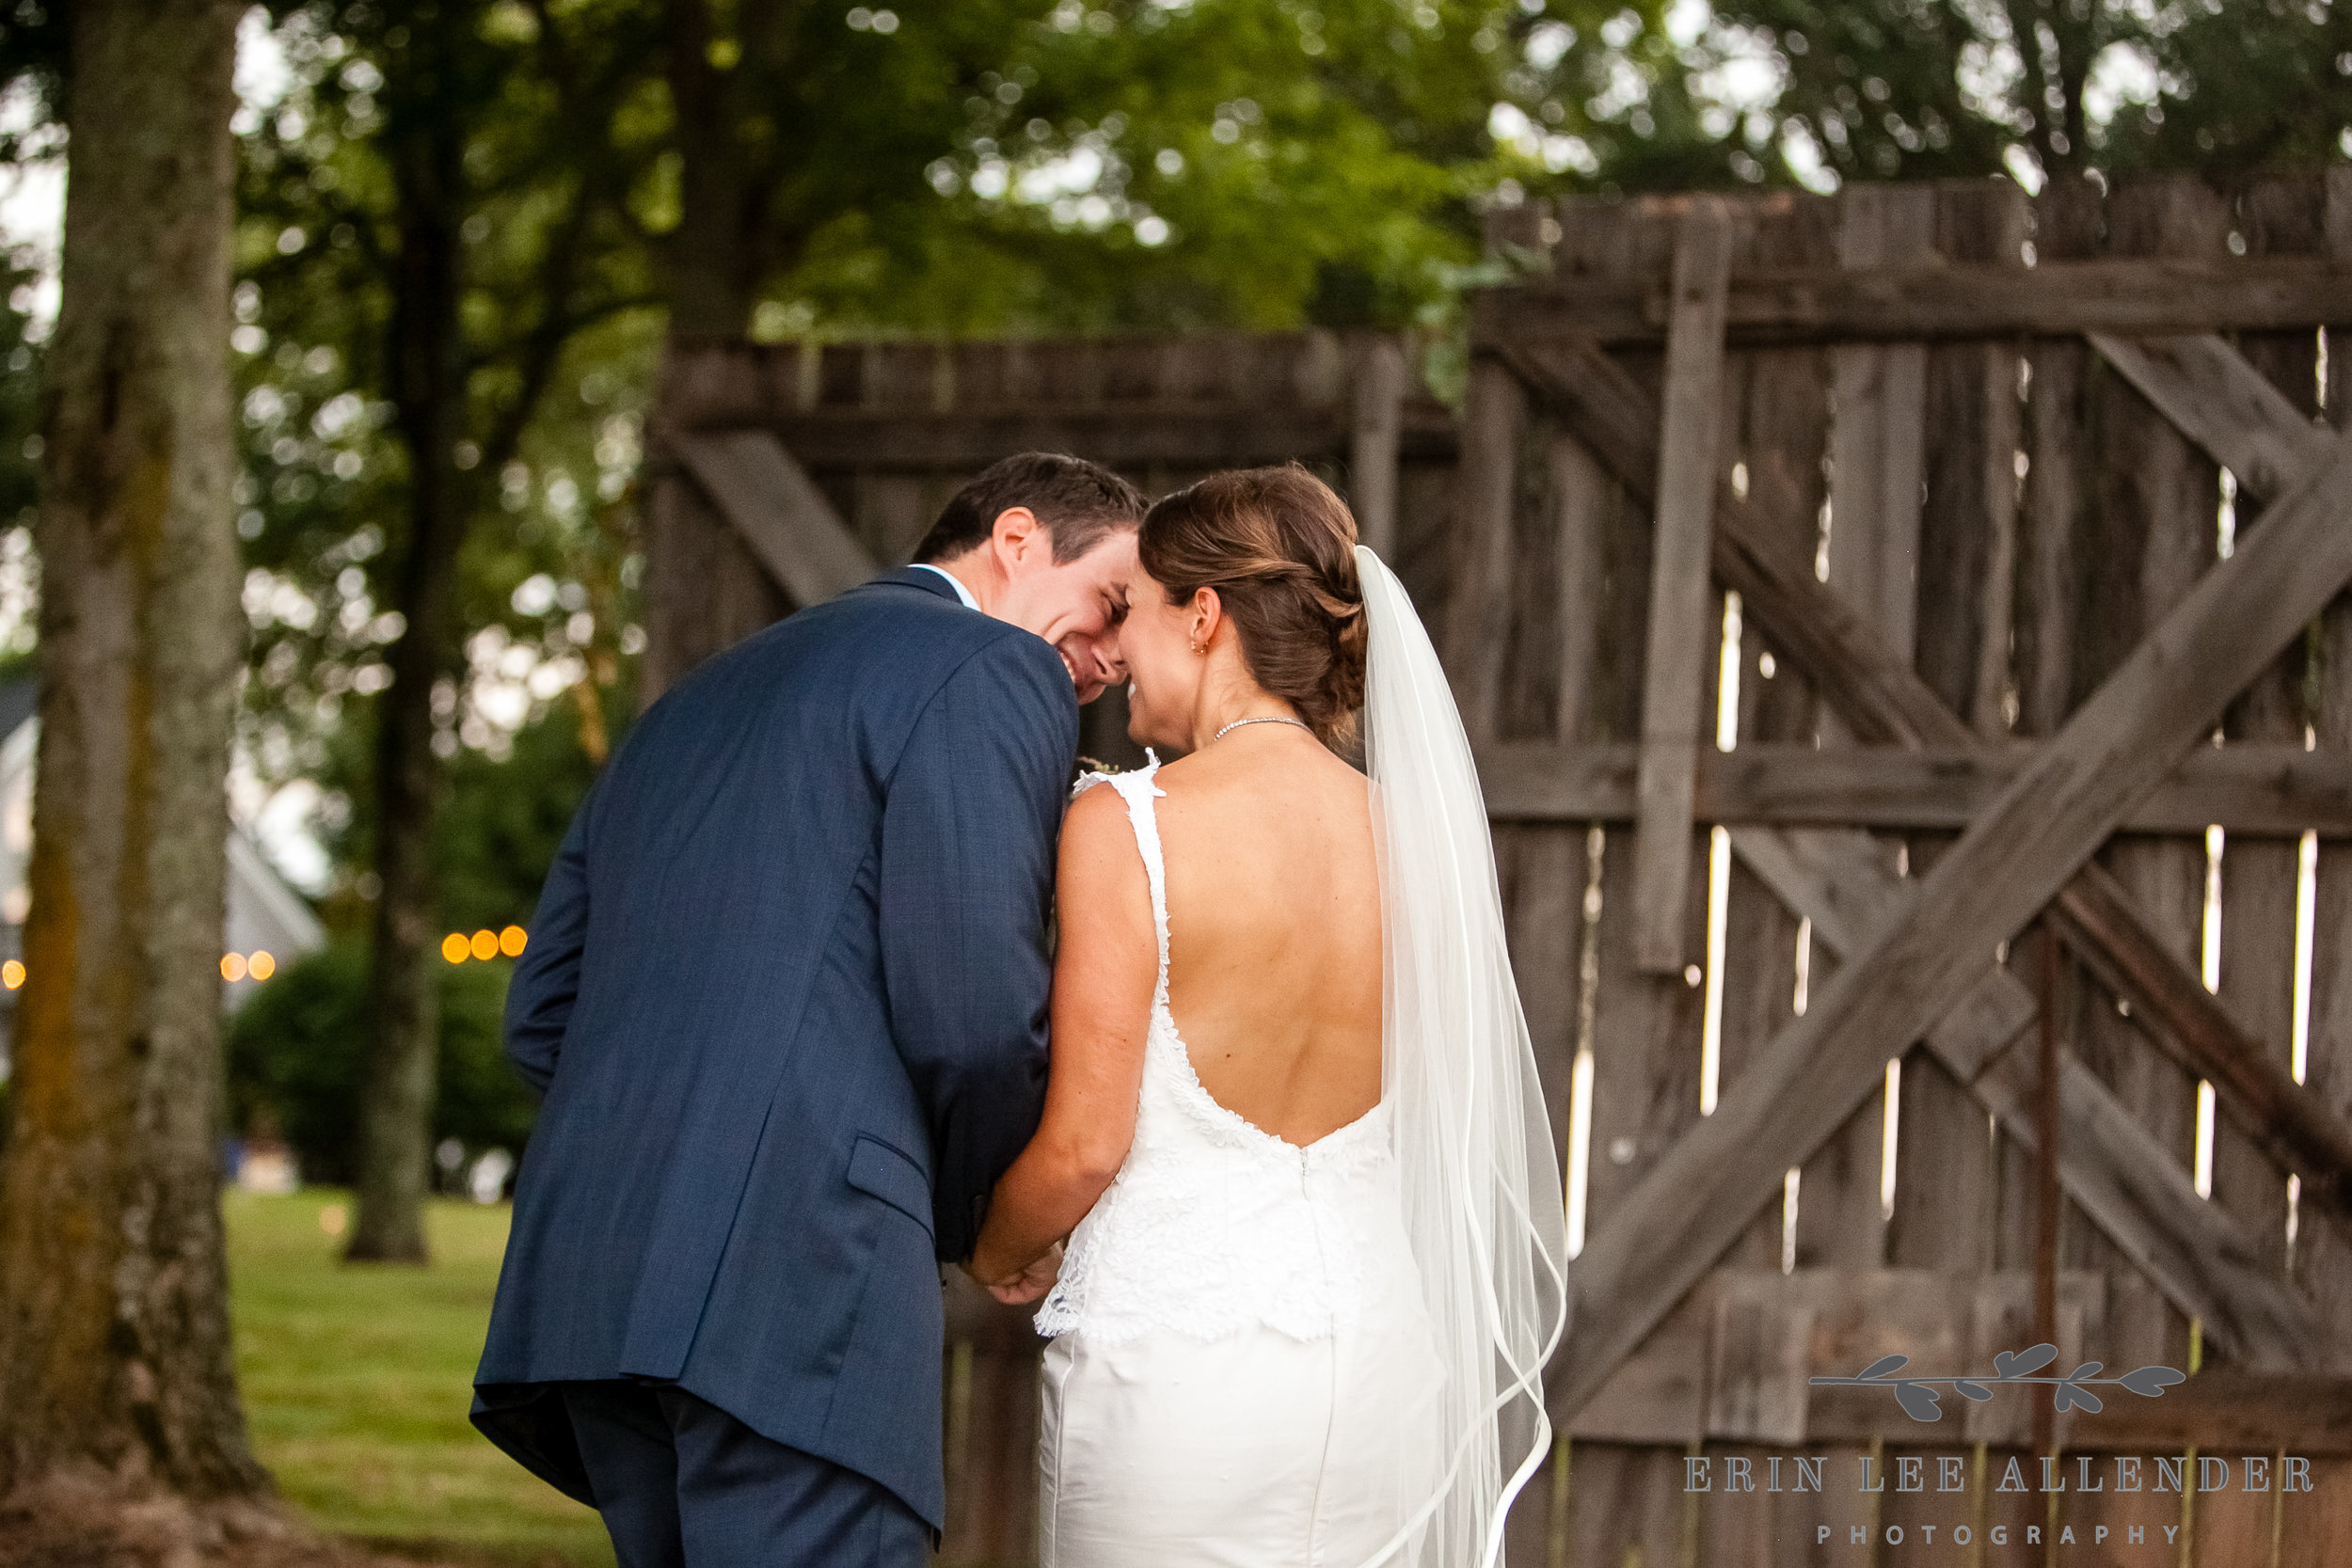 Groom_Bride_Kiss_While_Walking_Down_Aisle